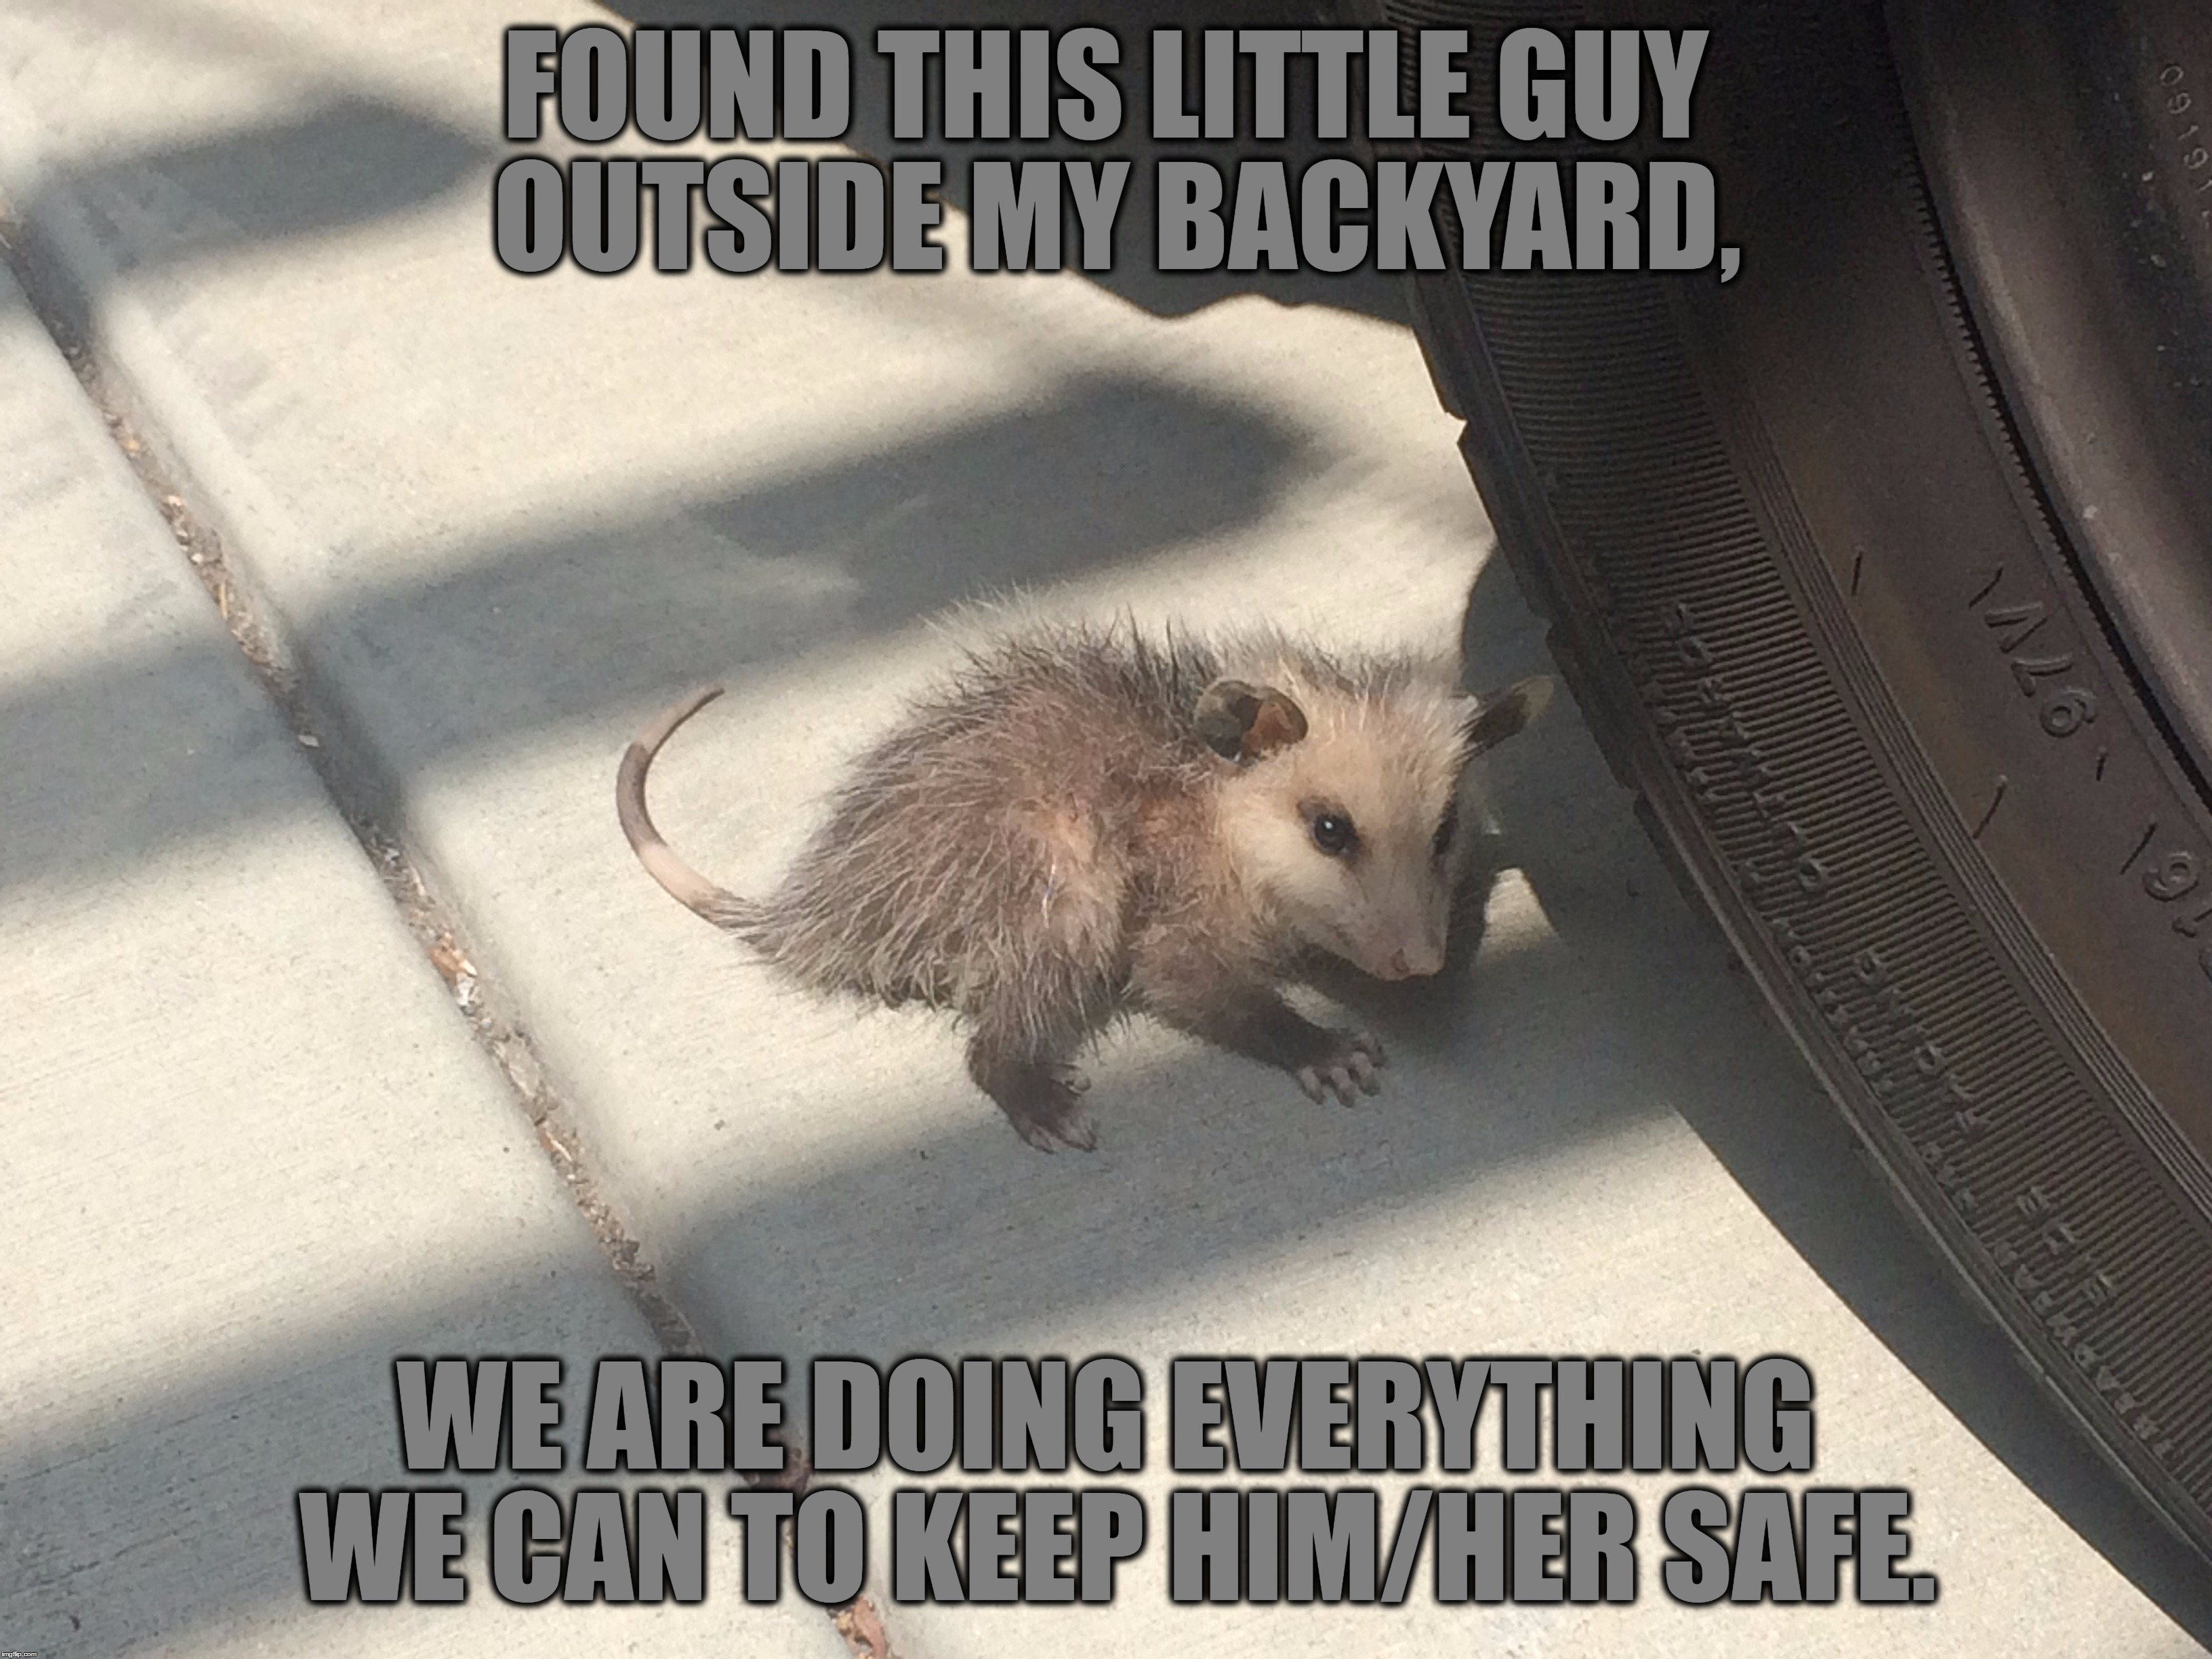 Meet Squibbles The Opossum | FOUND THIS LITTLE GUY OUTSIDE MY BACKYARD, WE ARE DOING EVERYTHING WE CAN TO KEEP HIM/HER SAFE. | image tagged in memes,animals,little guy,waiting for animal control to pick him up,backyard,outside | made w/ Imgflip meme maker